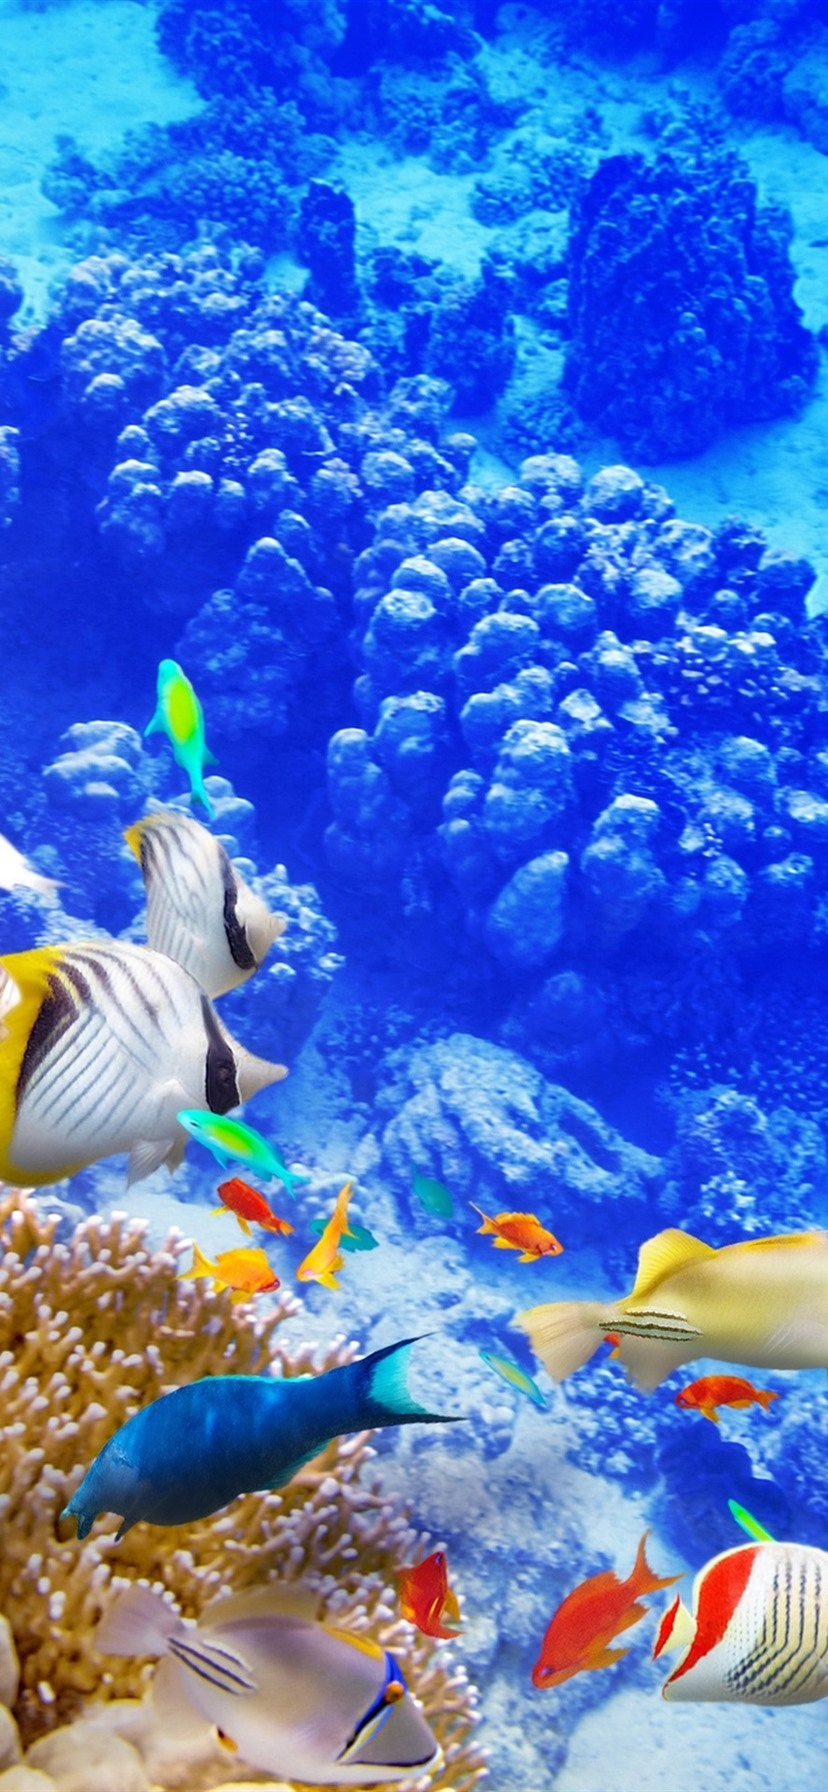 Wallpaper Blue sea underwater world, coral, tropical fishes 3840x2160 UHD 4K Picture, Image